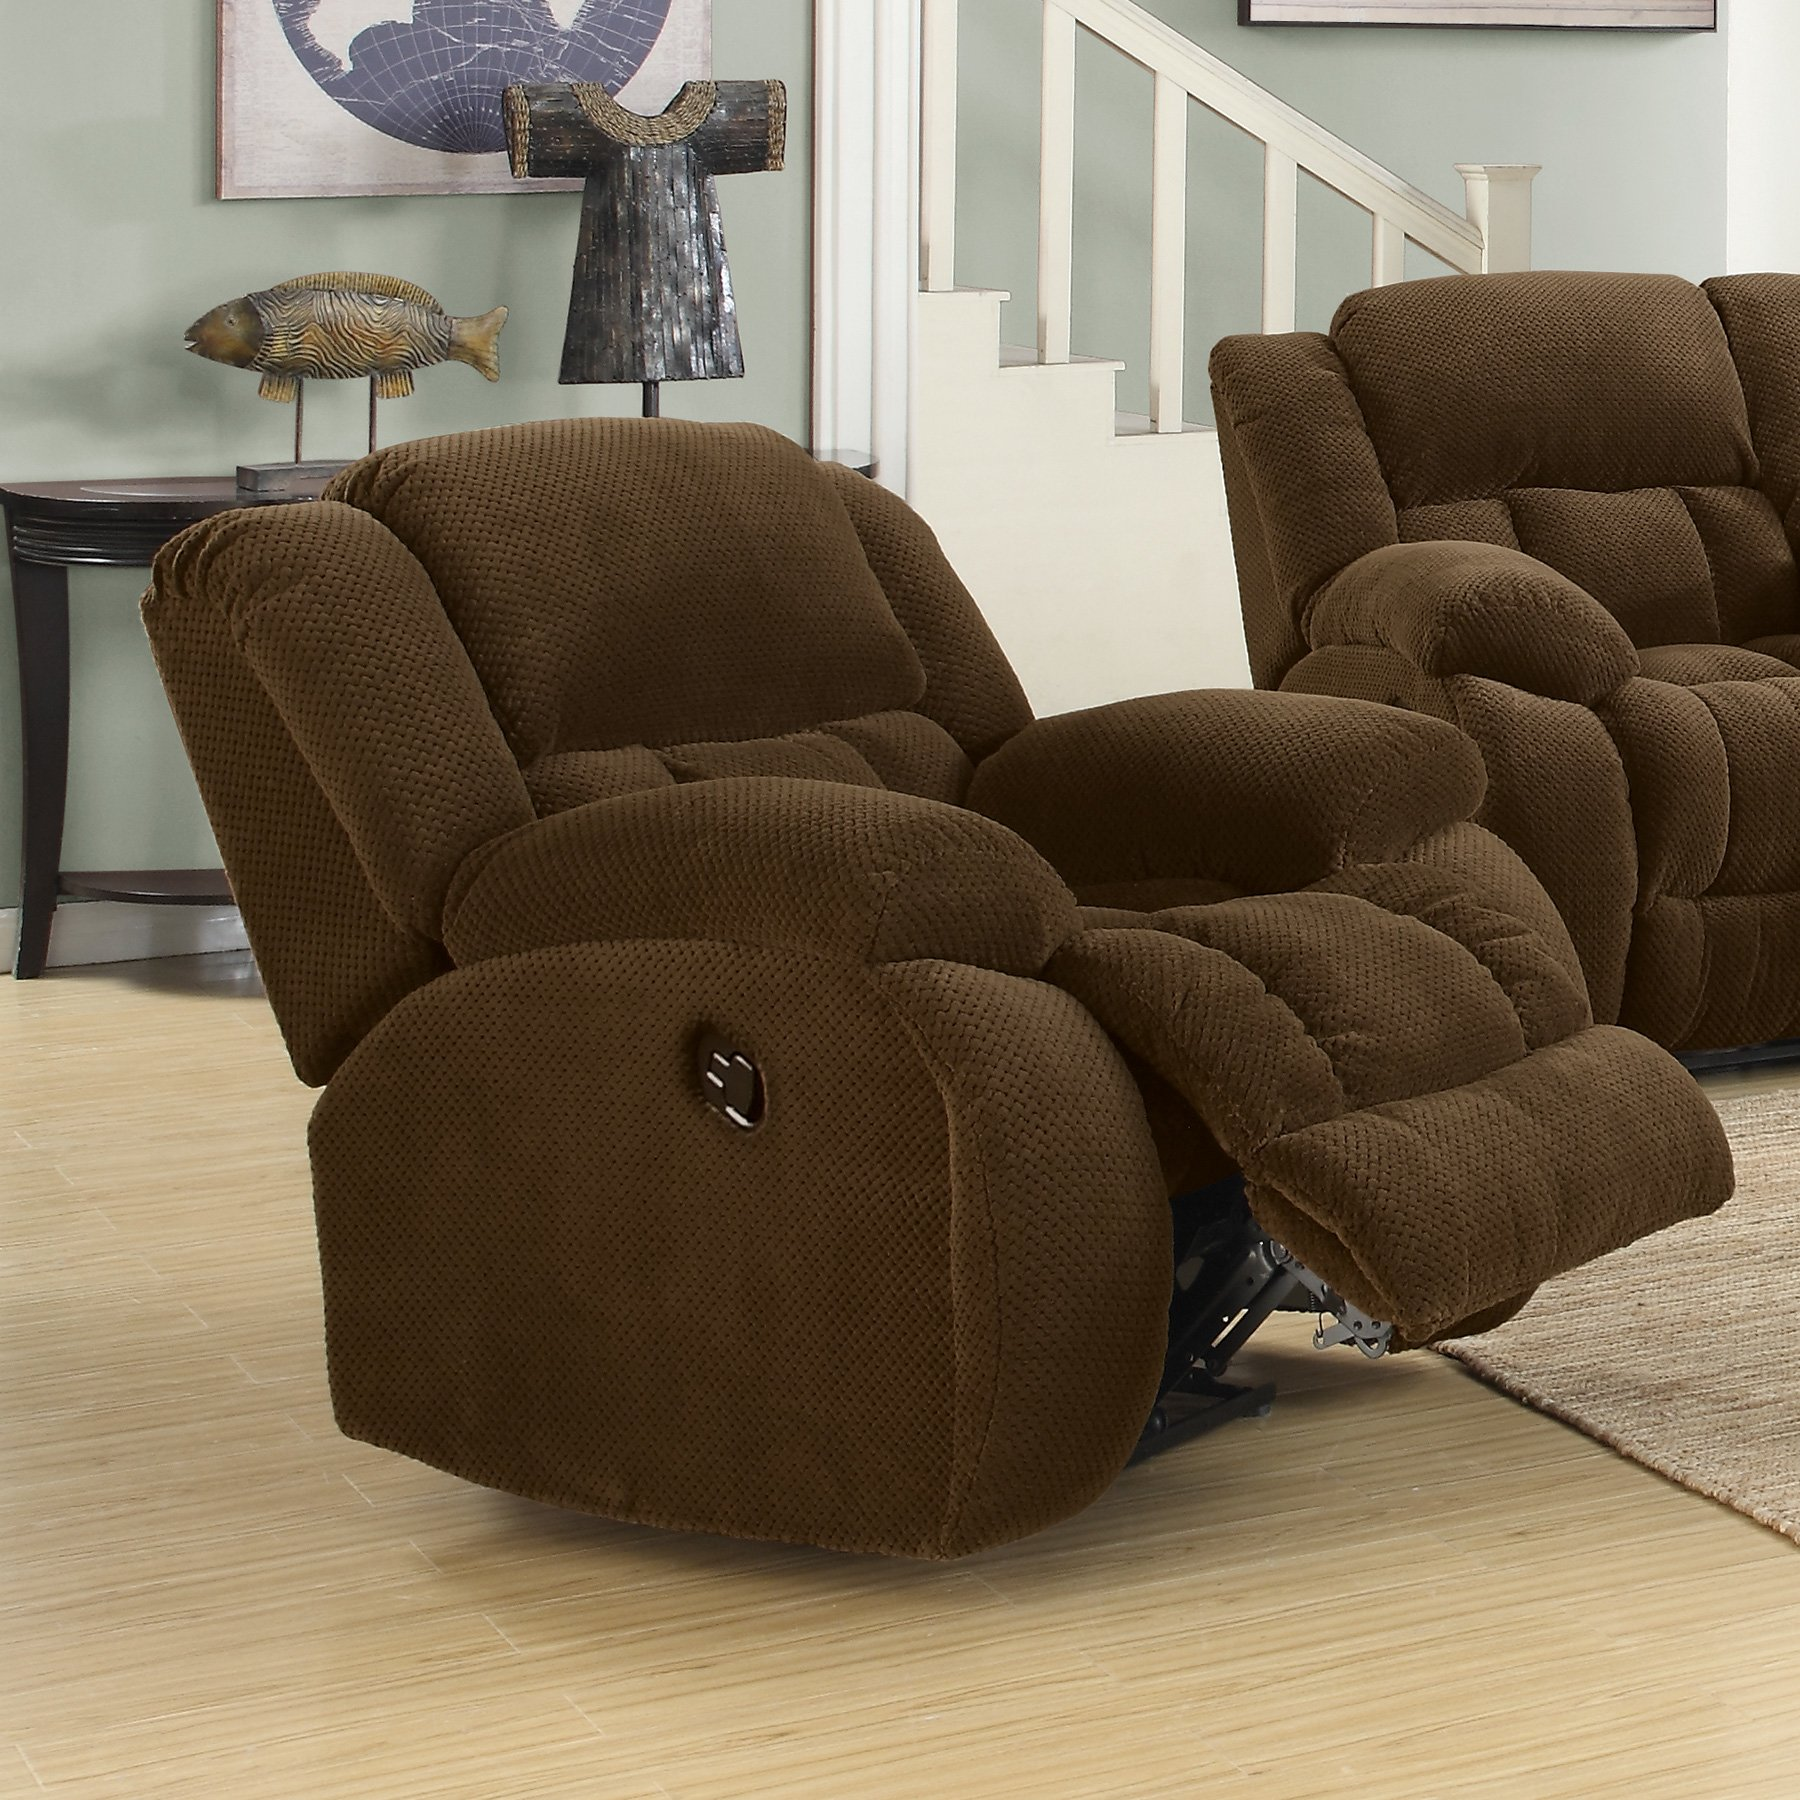 Glider Recliner | Recliner Glider Chair Nursery | Cheap Glider Recliner & Furniture u0026 Rug: Classy Glider Recliner For Home Furniture Idea ... islam-shia.org